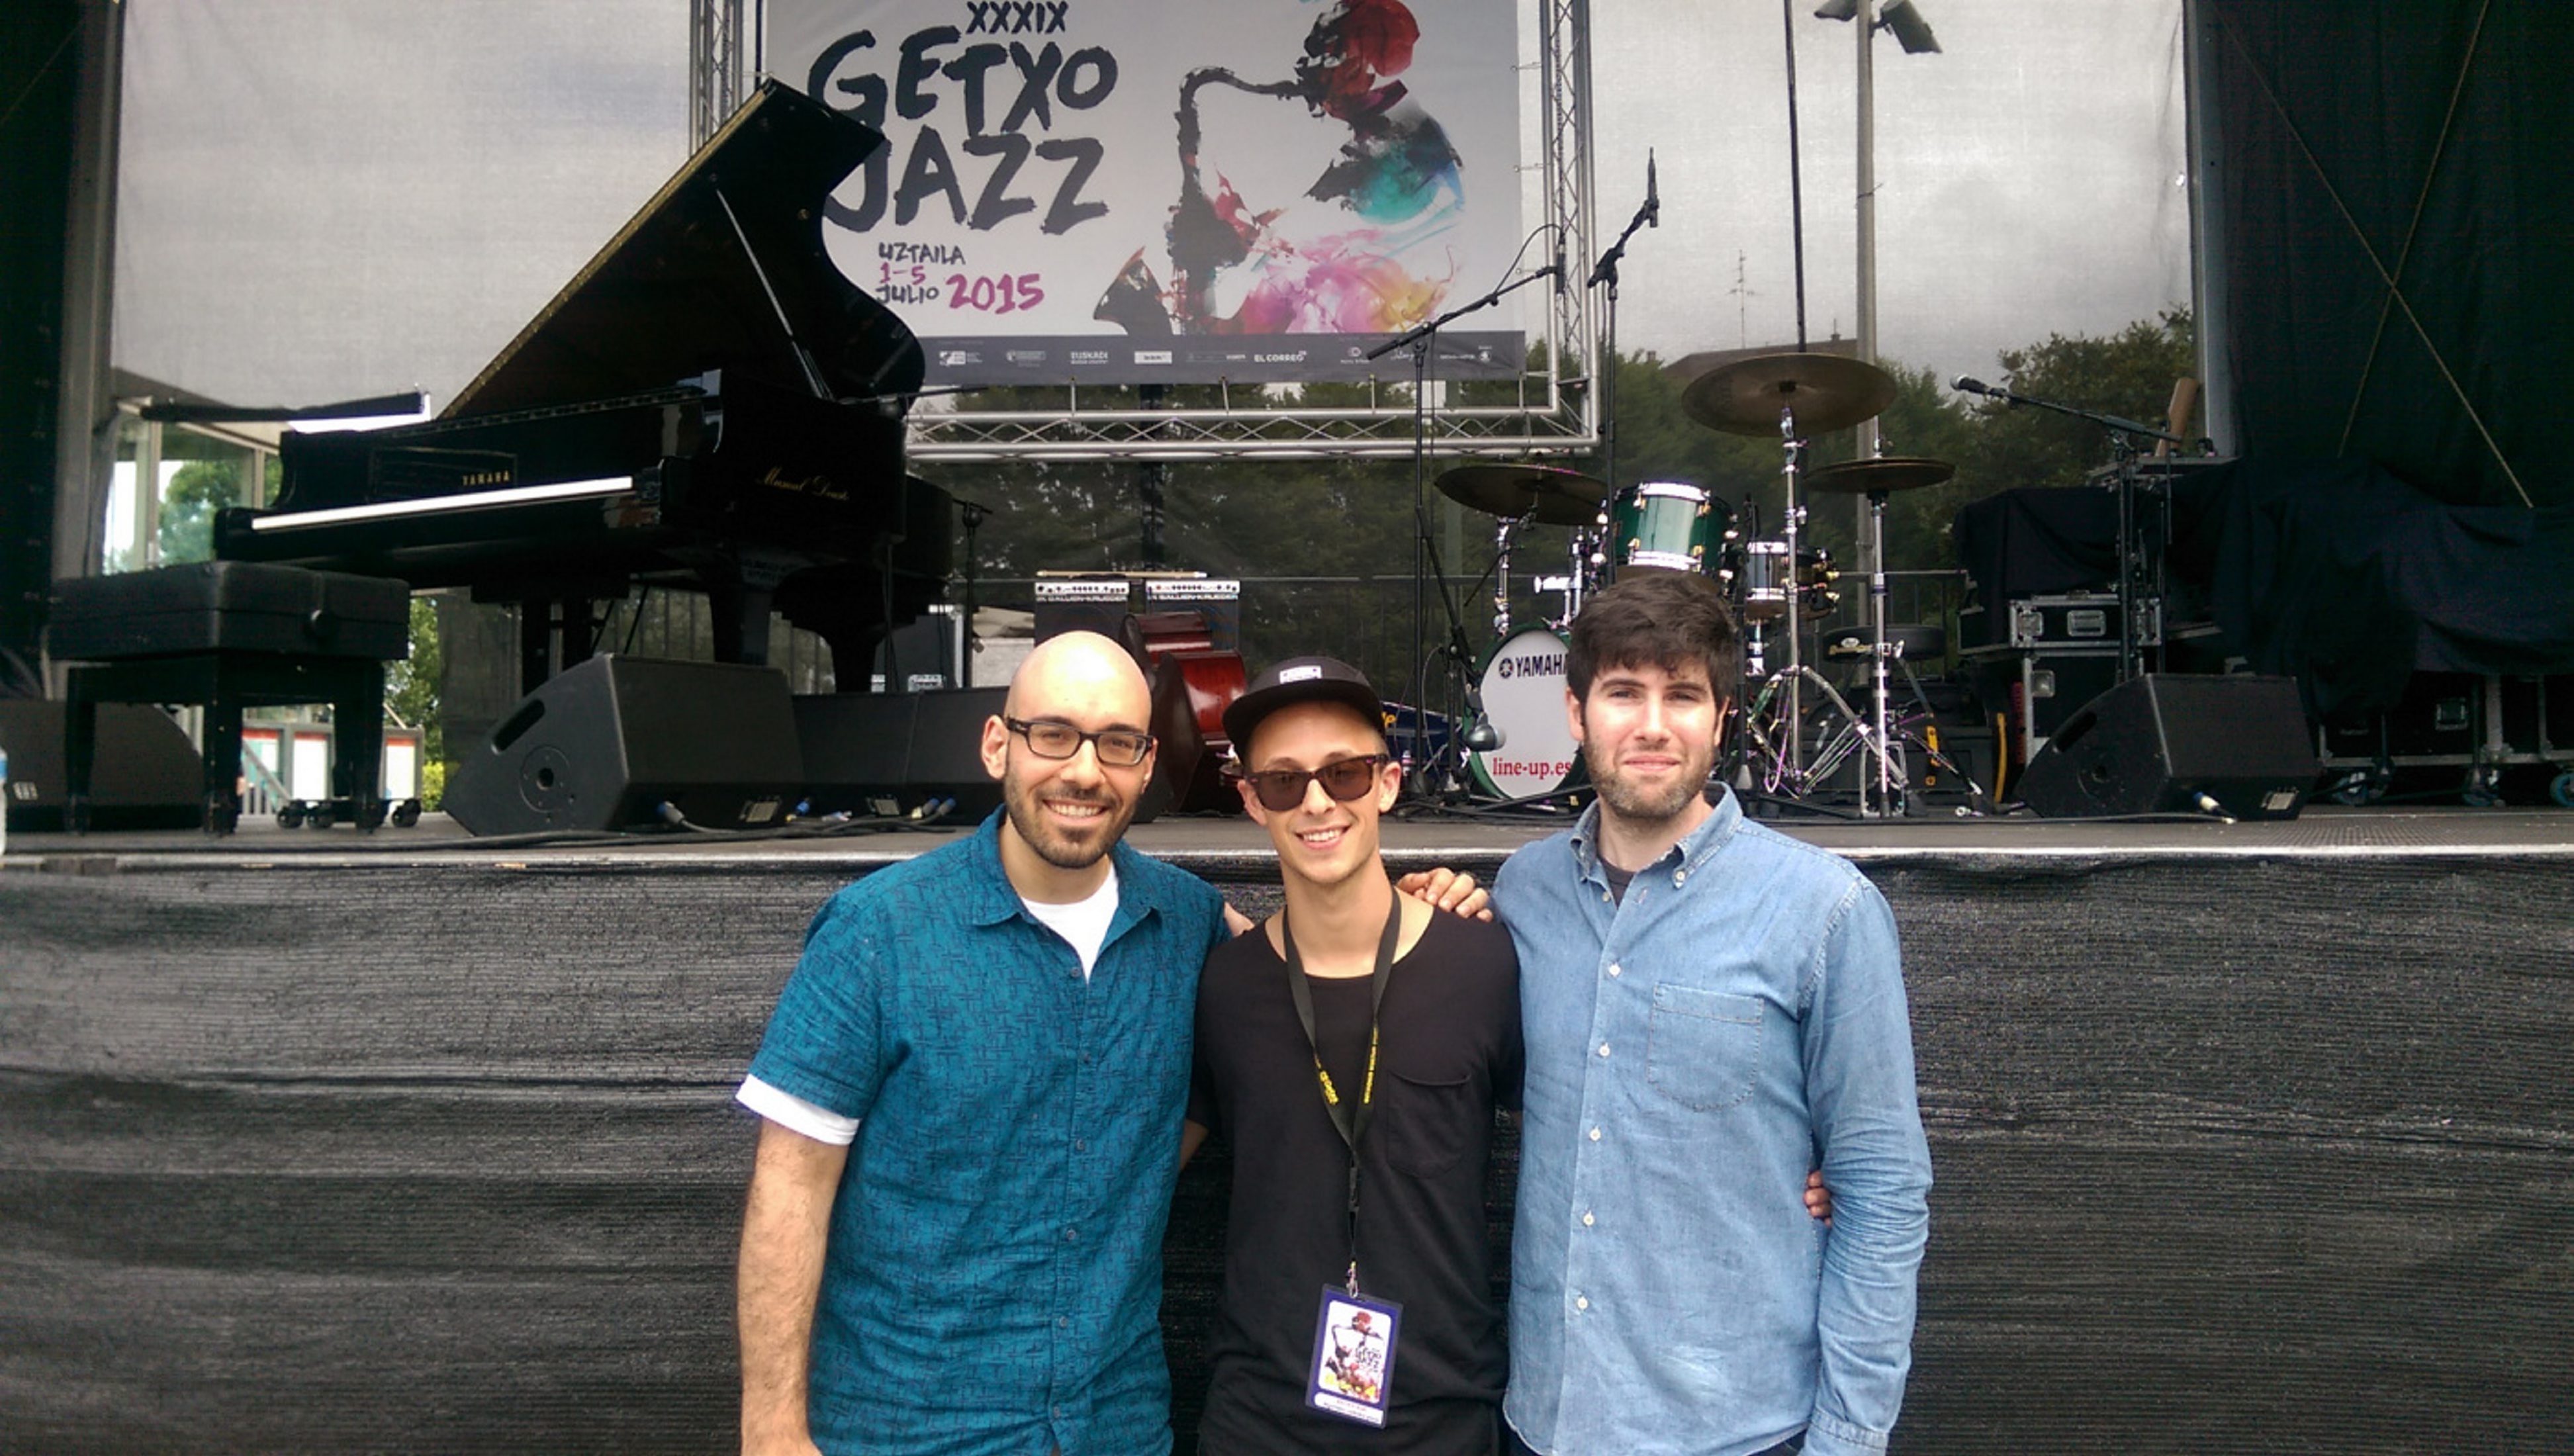 The Angelo DiLoreto Trio features, from left, DiLoreto, Philippe Lemm and Jeff Koch. They are pictured at the Getxo Festival in Spain.